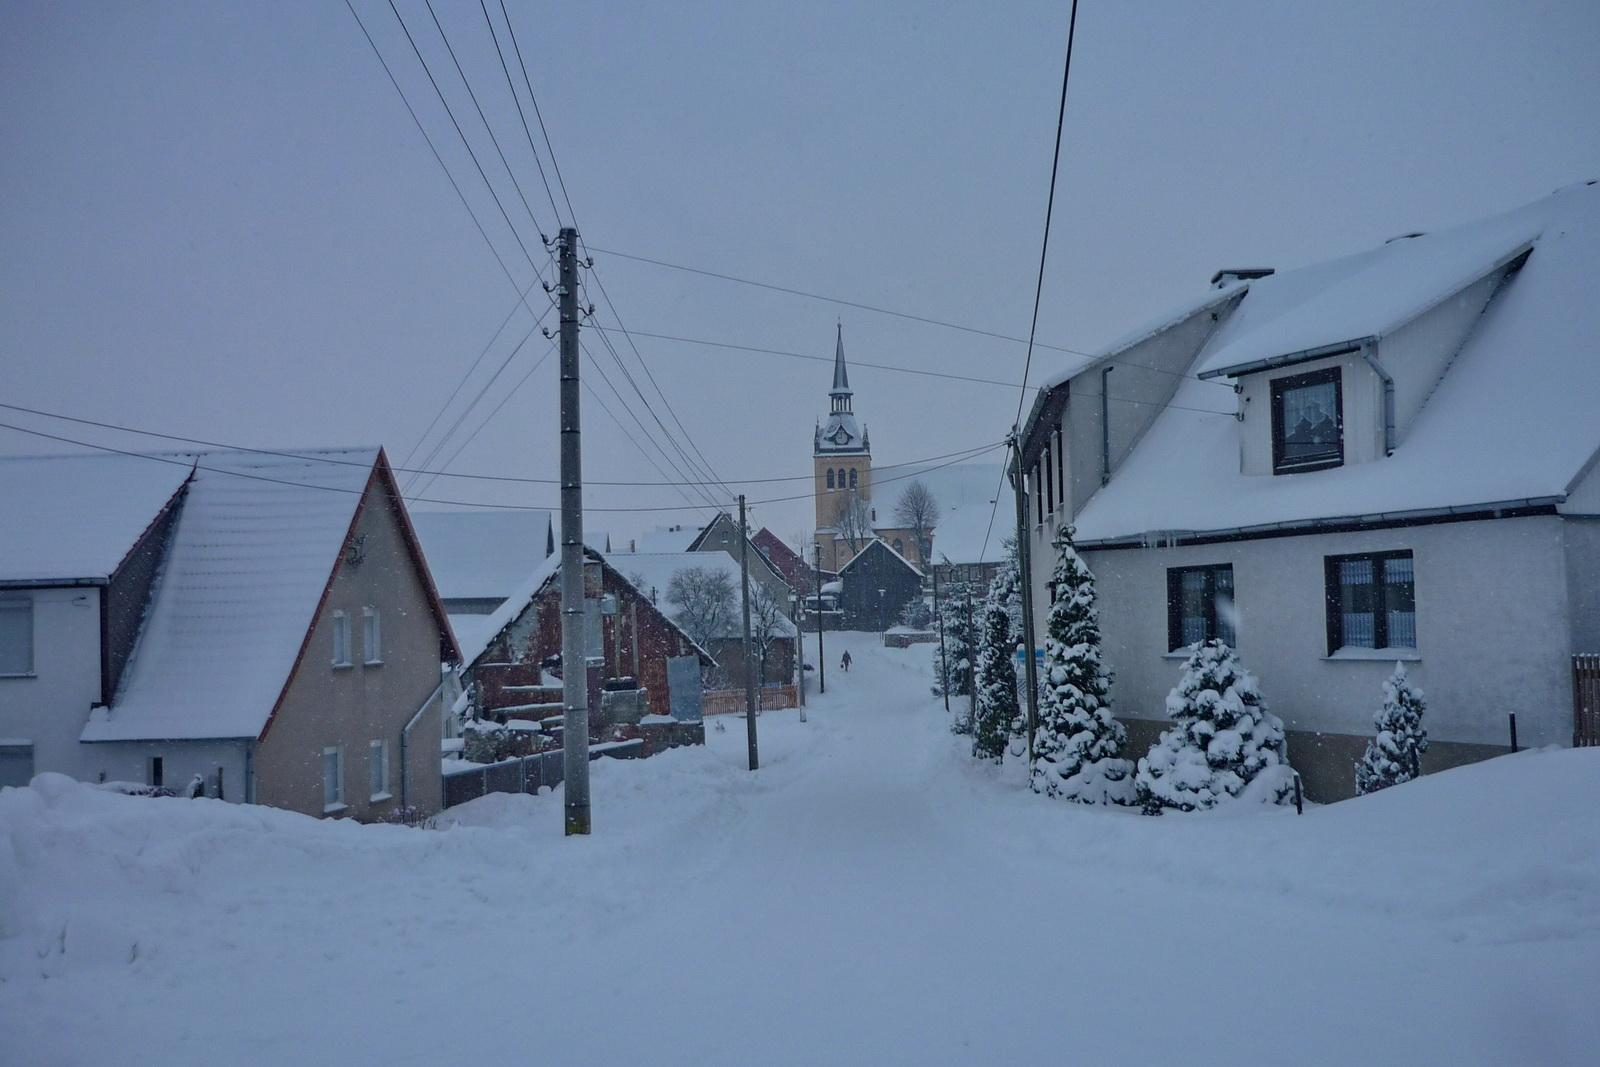 Winter in Hayn